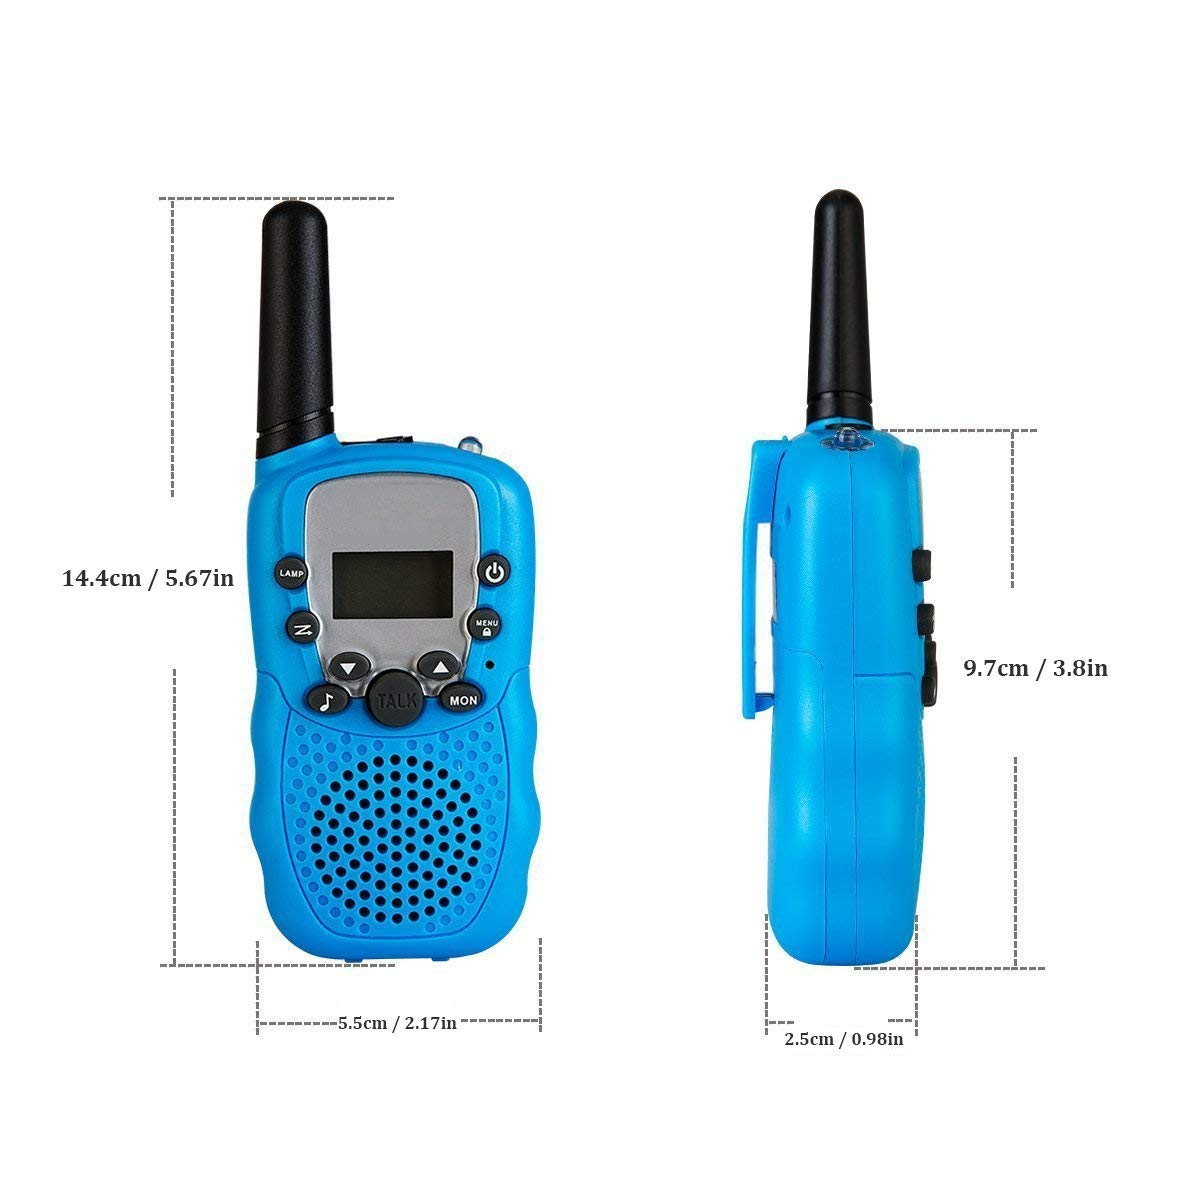 Rechargeable Walkie Talkie, Easy to use Two Way Radios, Best Gift 22 Chanels Long Range Cool Vox Walky Talky for Camping Hiking Fishing Toys with Batteries and Charger (Blue) by GZL (Image #3)